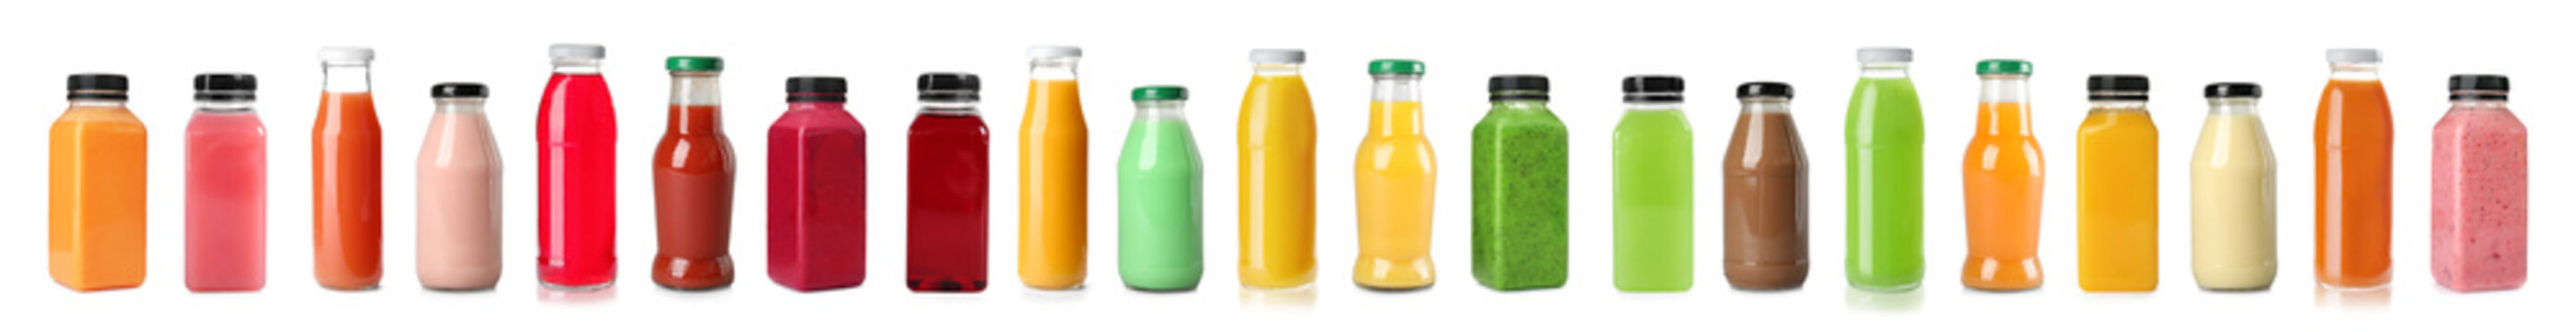 Set with bottles of different juices on white background